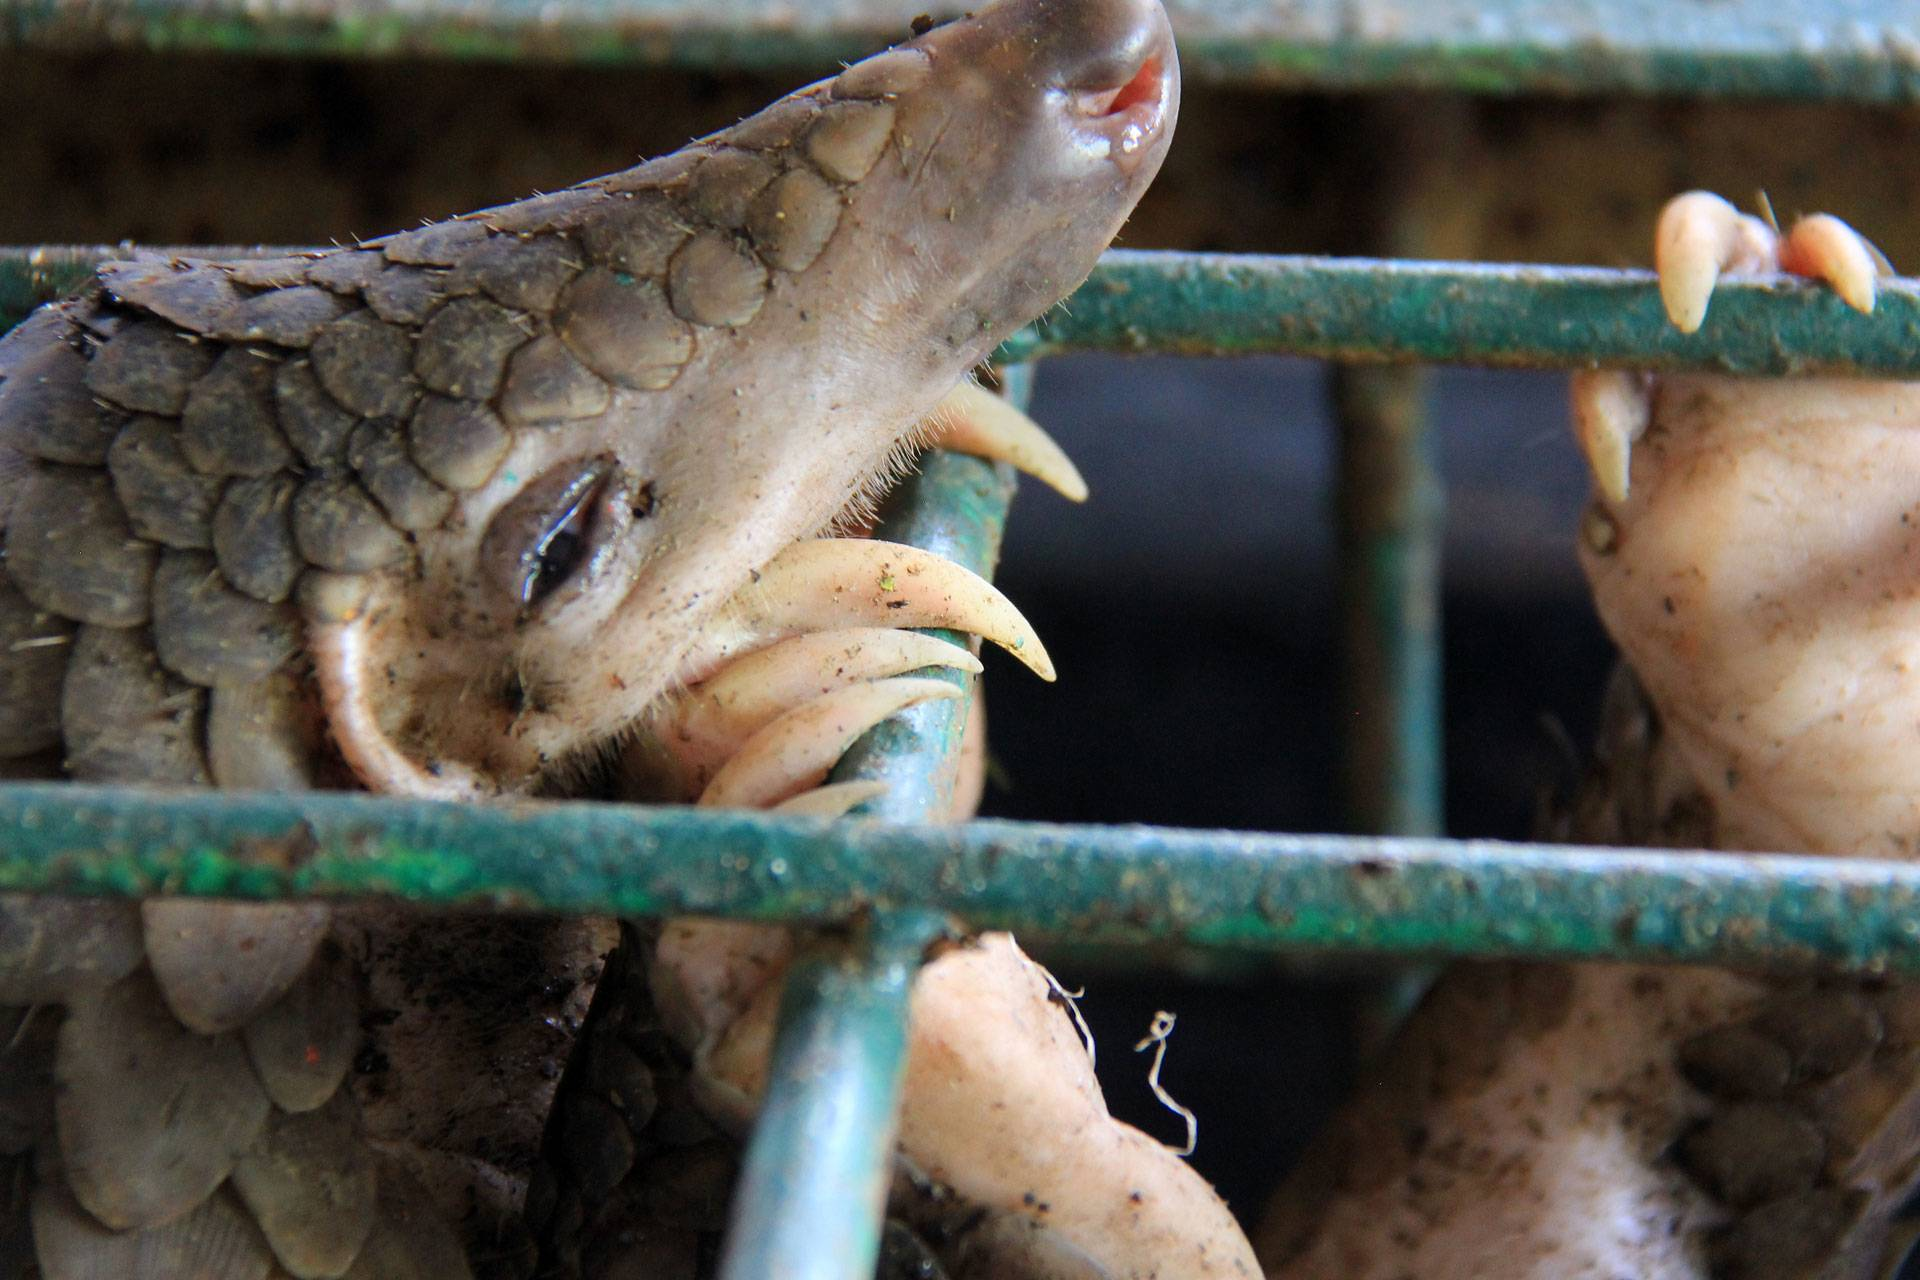 Pangolins are not the source of COVID-19